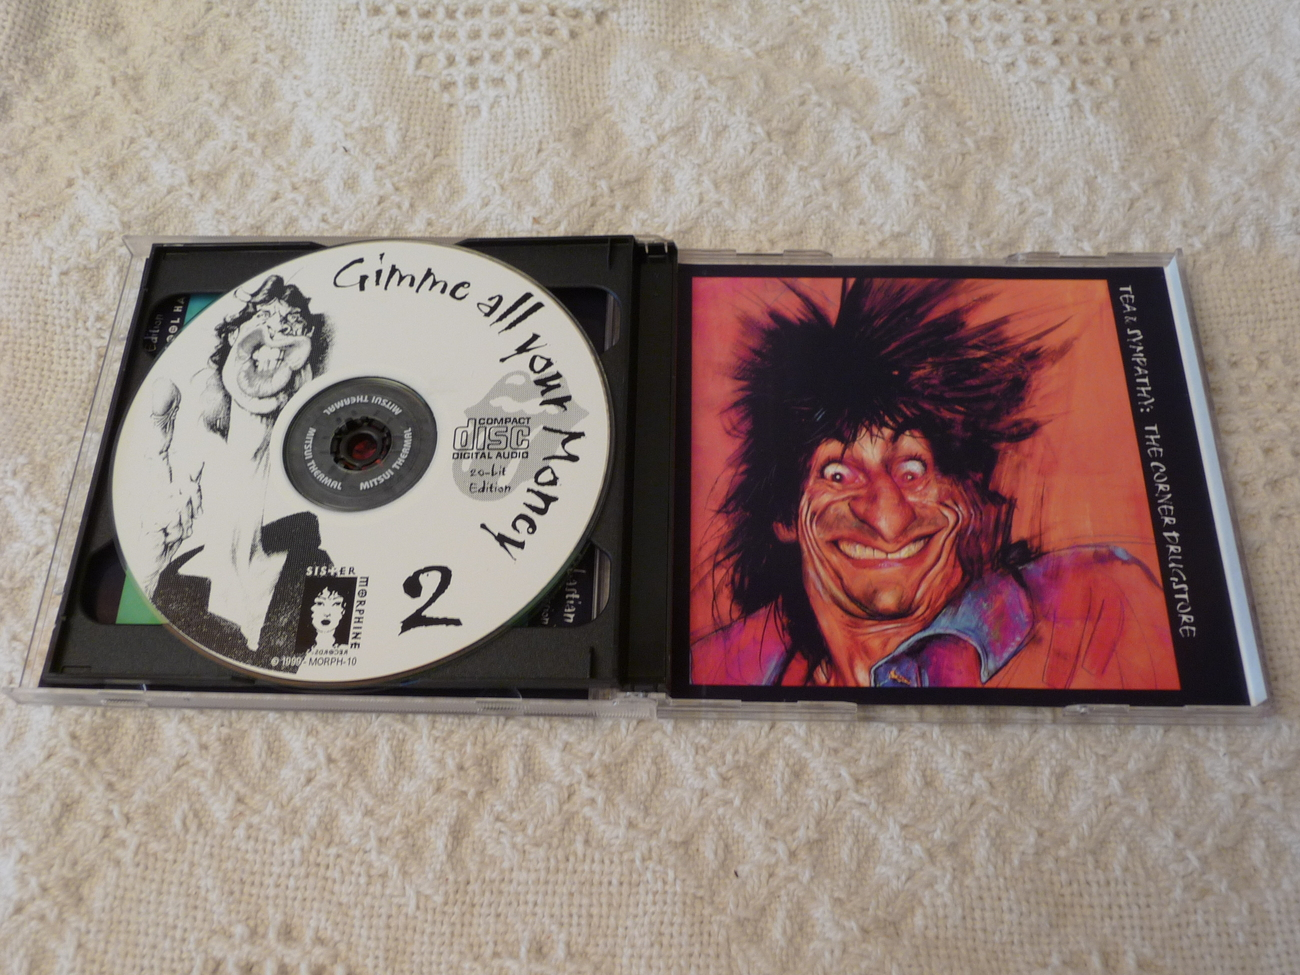 The Rolling Stones Gimmie All Your Money Oakland 1999 Clapton Original 2 CD